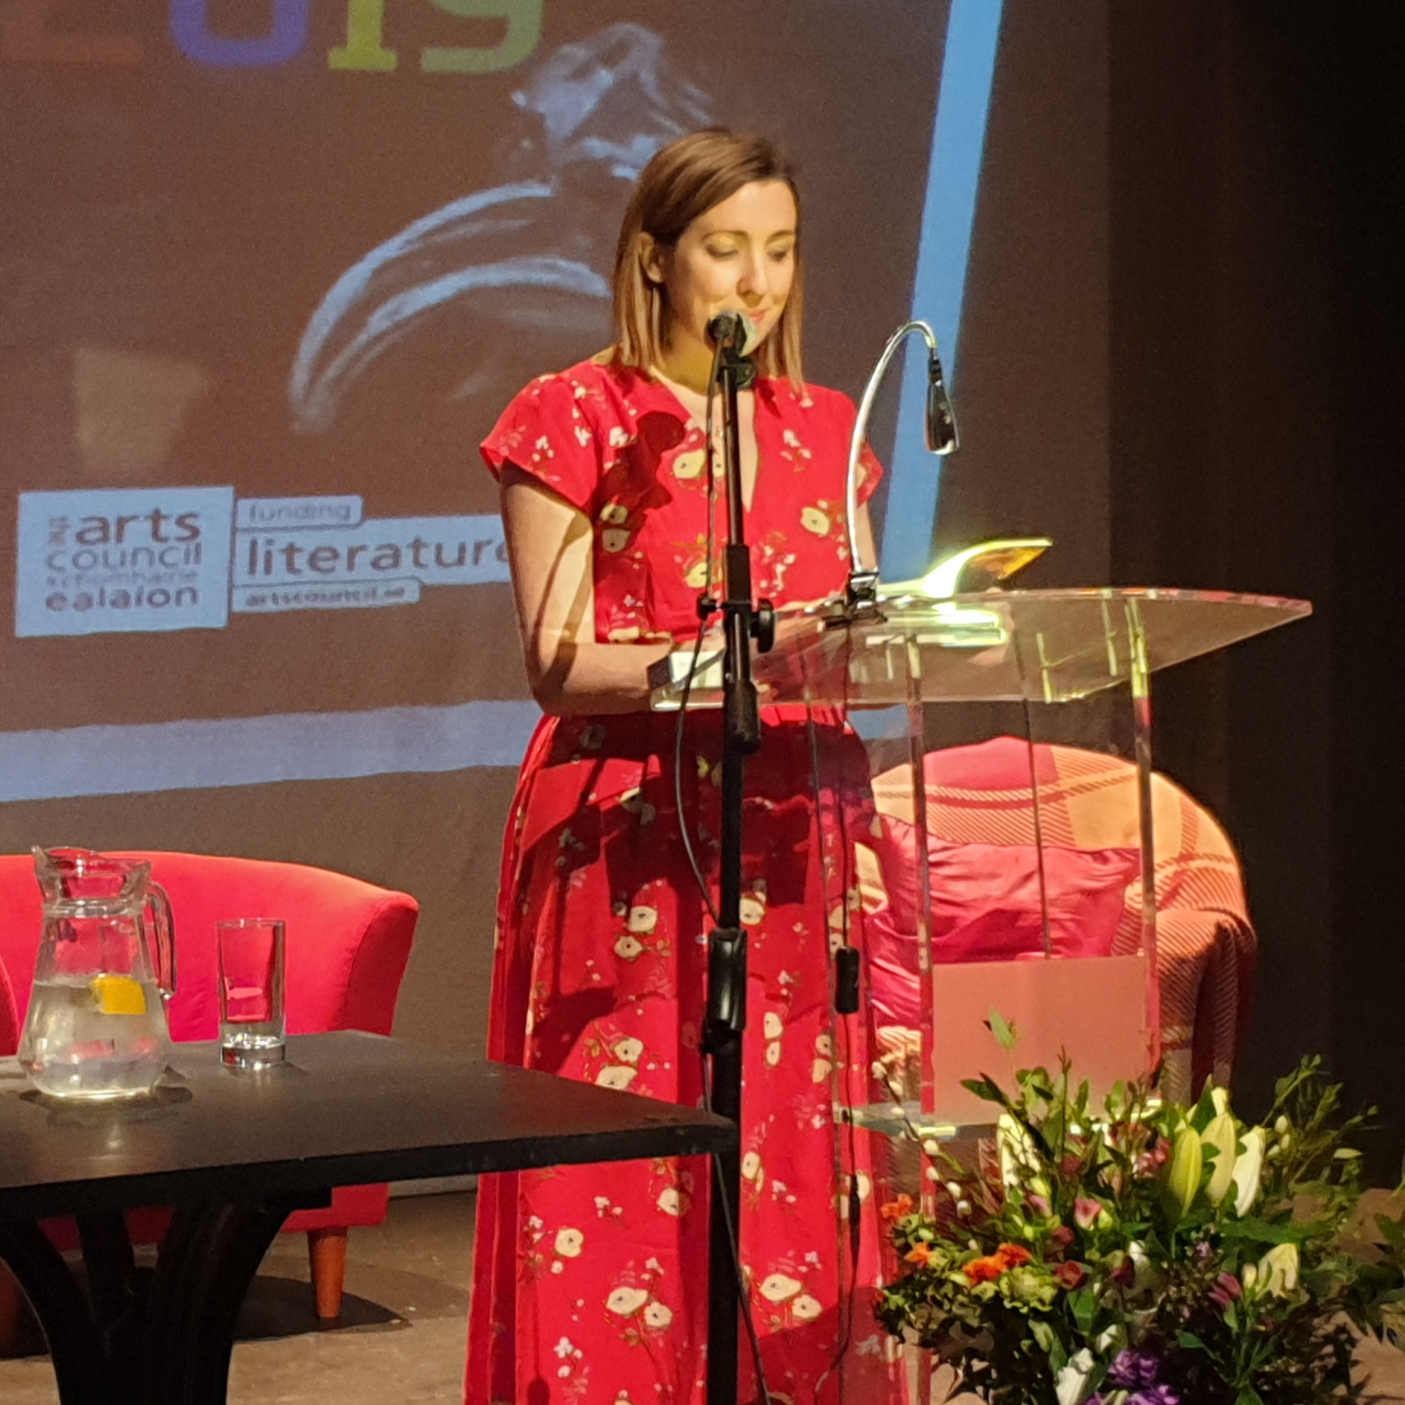 O'Shaughnessy Poetry Prize Winner Ailbhe Ní Ghearbhuigh